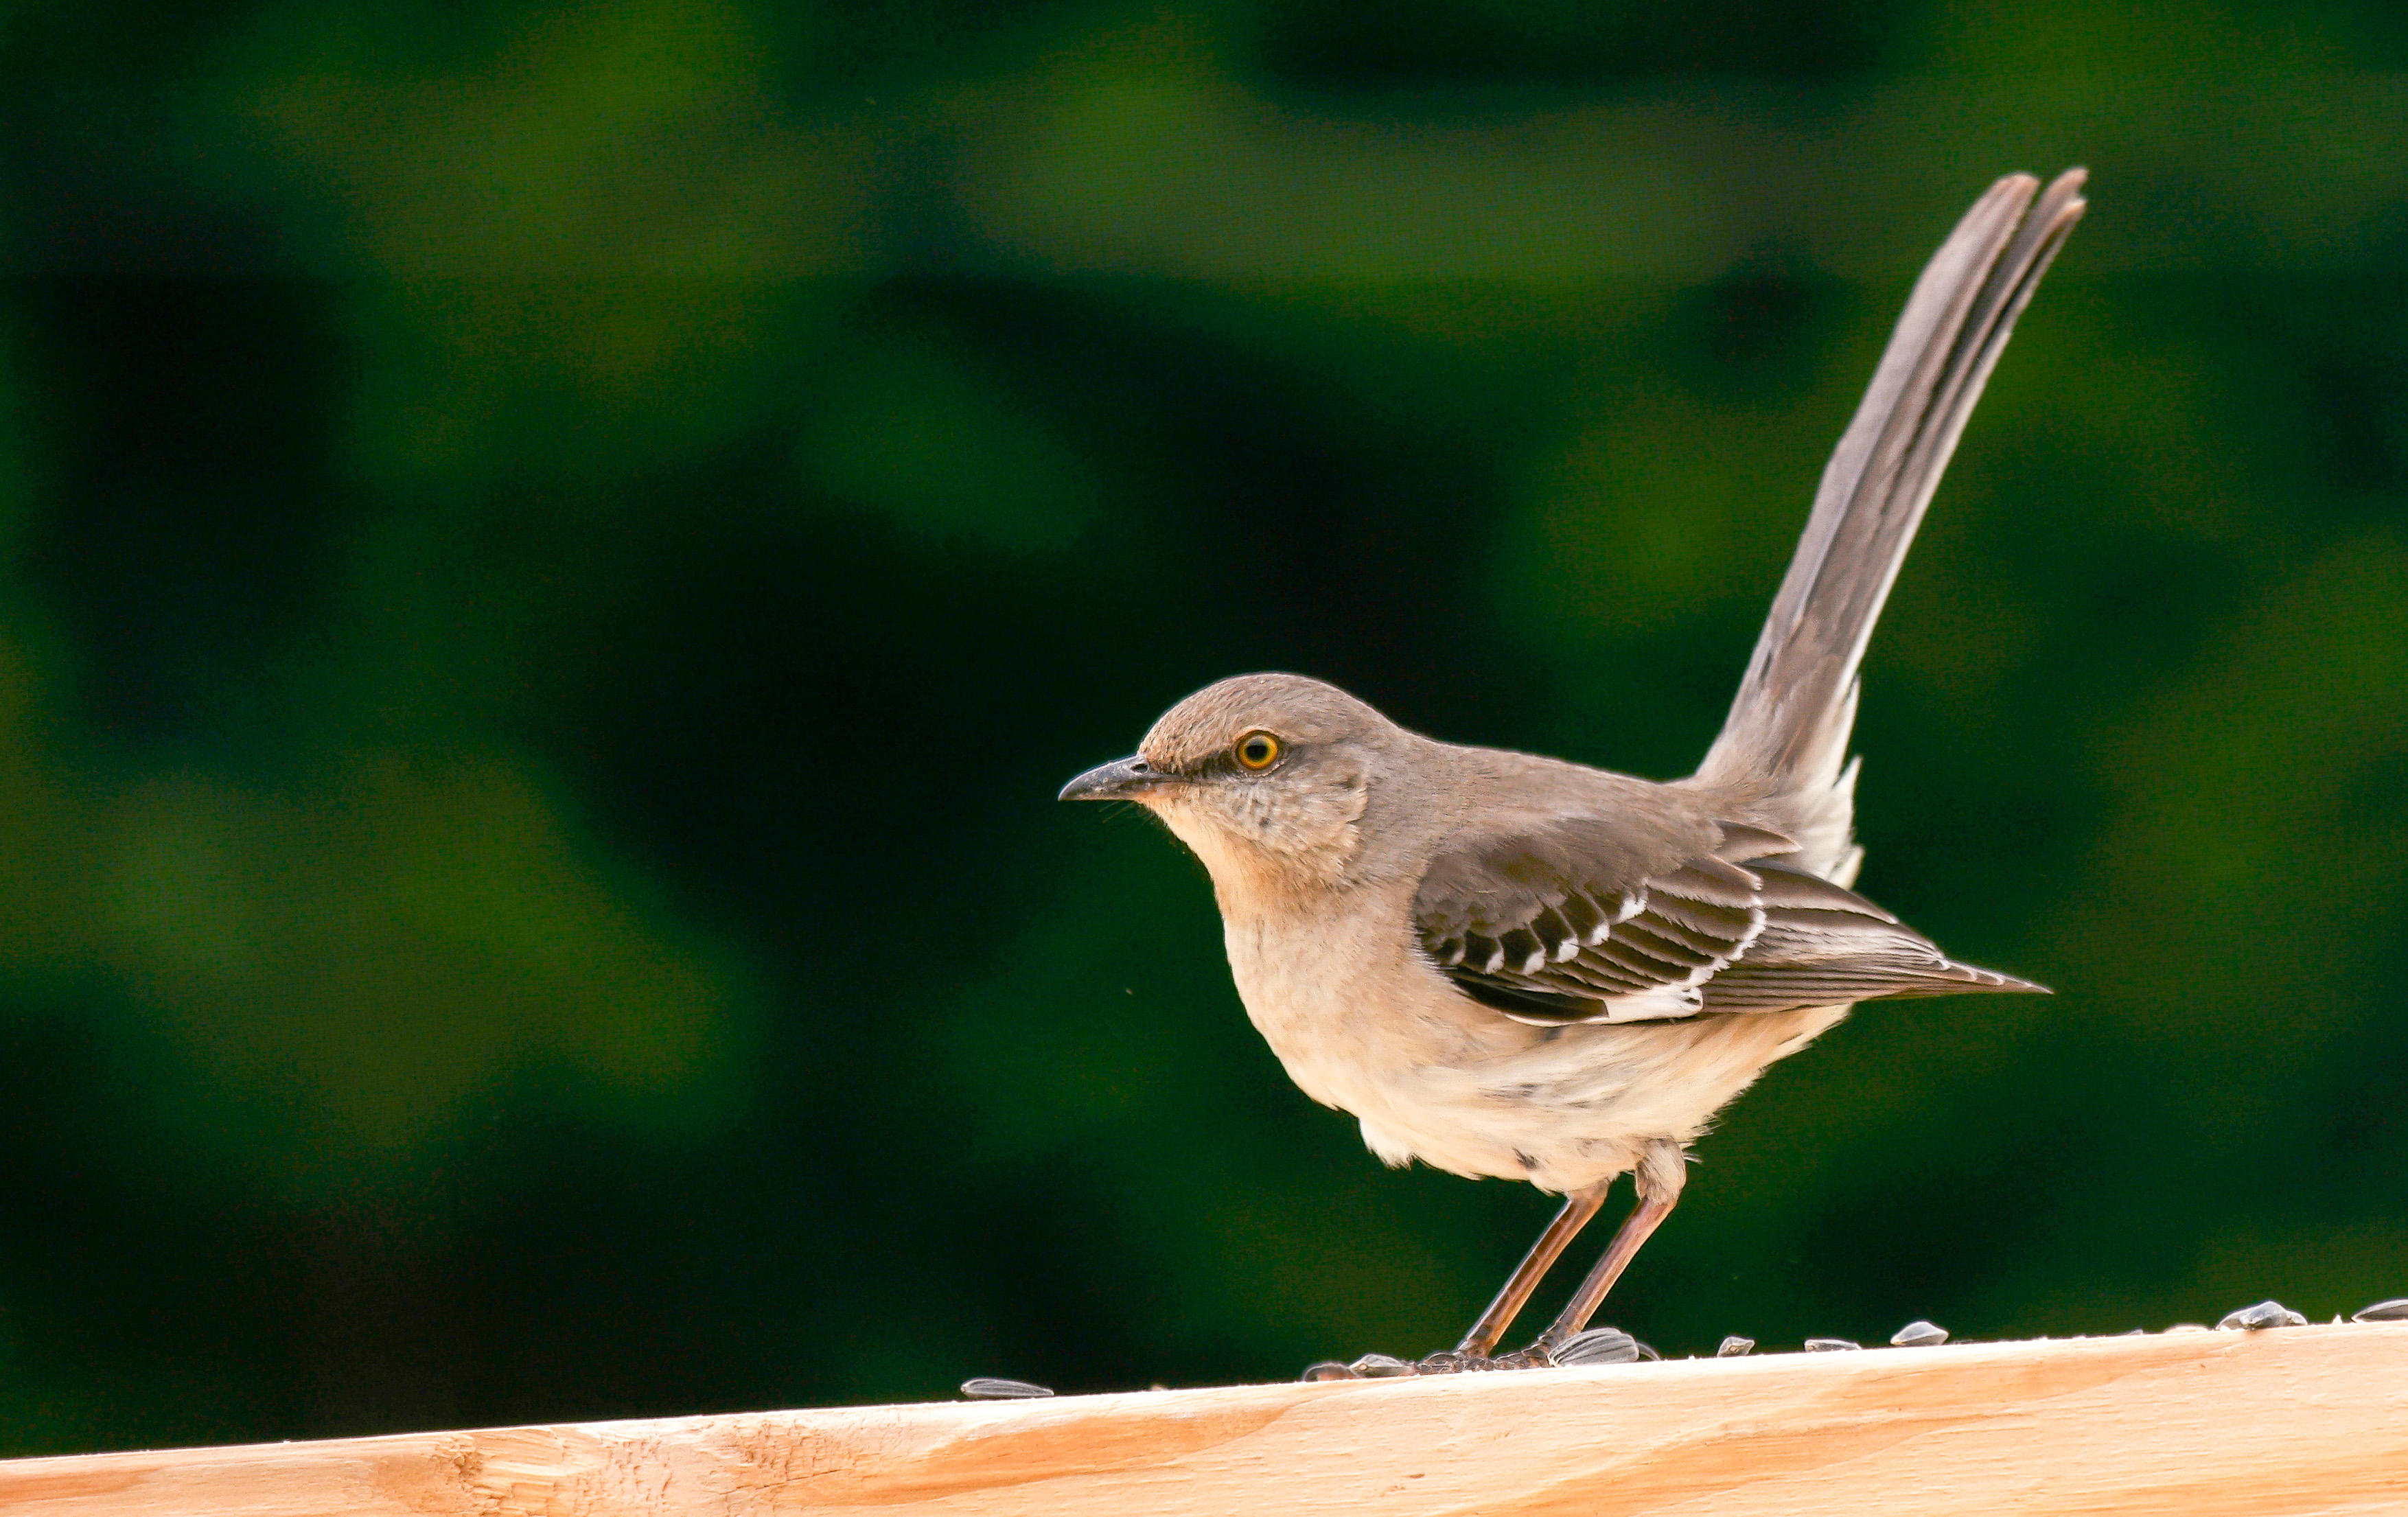 Male_Northern_Mockingbird.jpg (3508×2210)